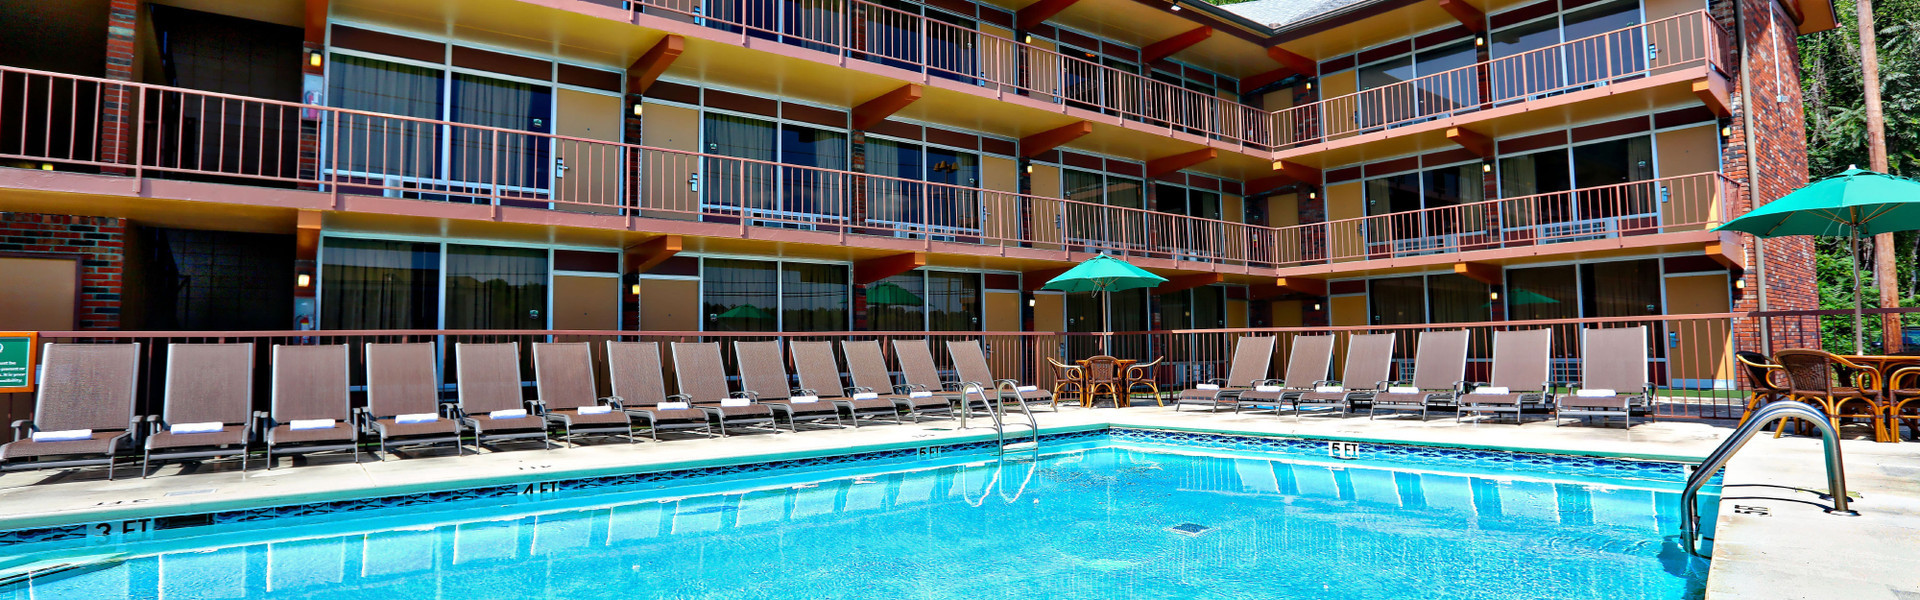 After an amazing day visiting Pigeon Forge and Gatlinburg, relax and unwind by the pool and treat yourself to some quiet time.